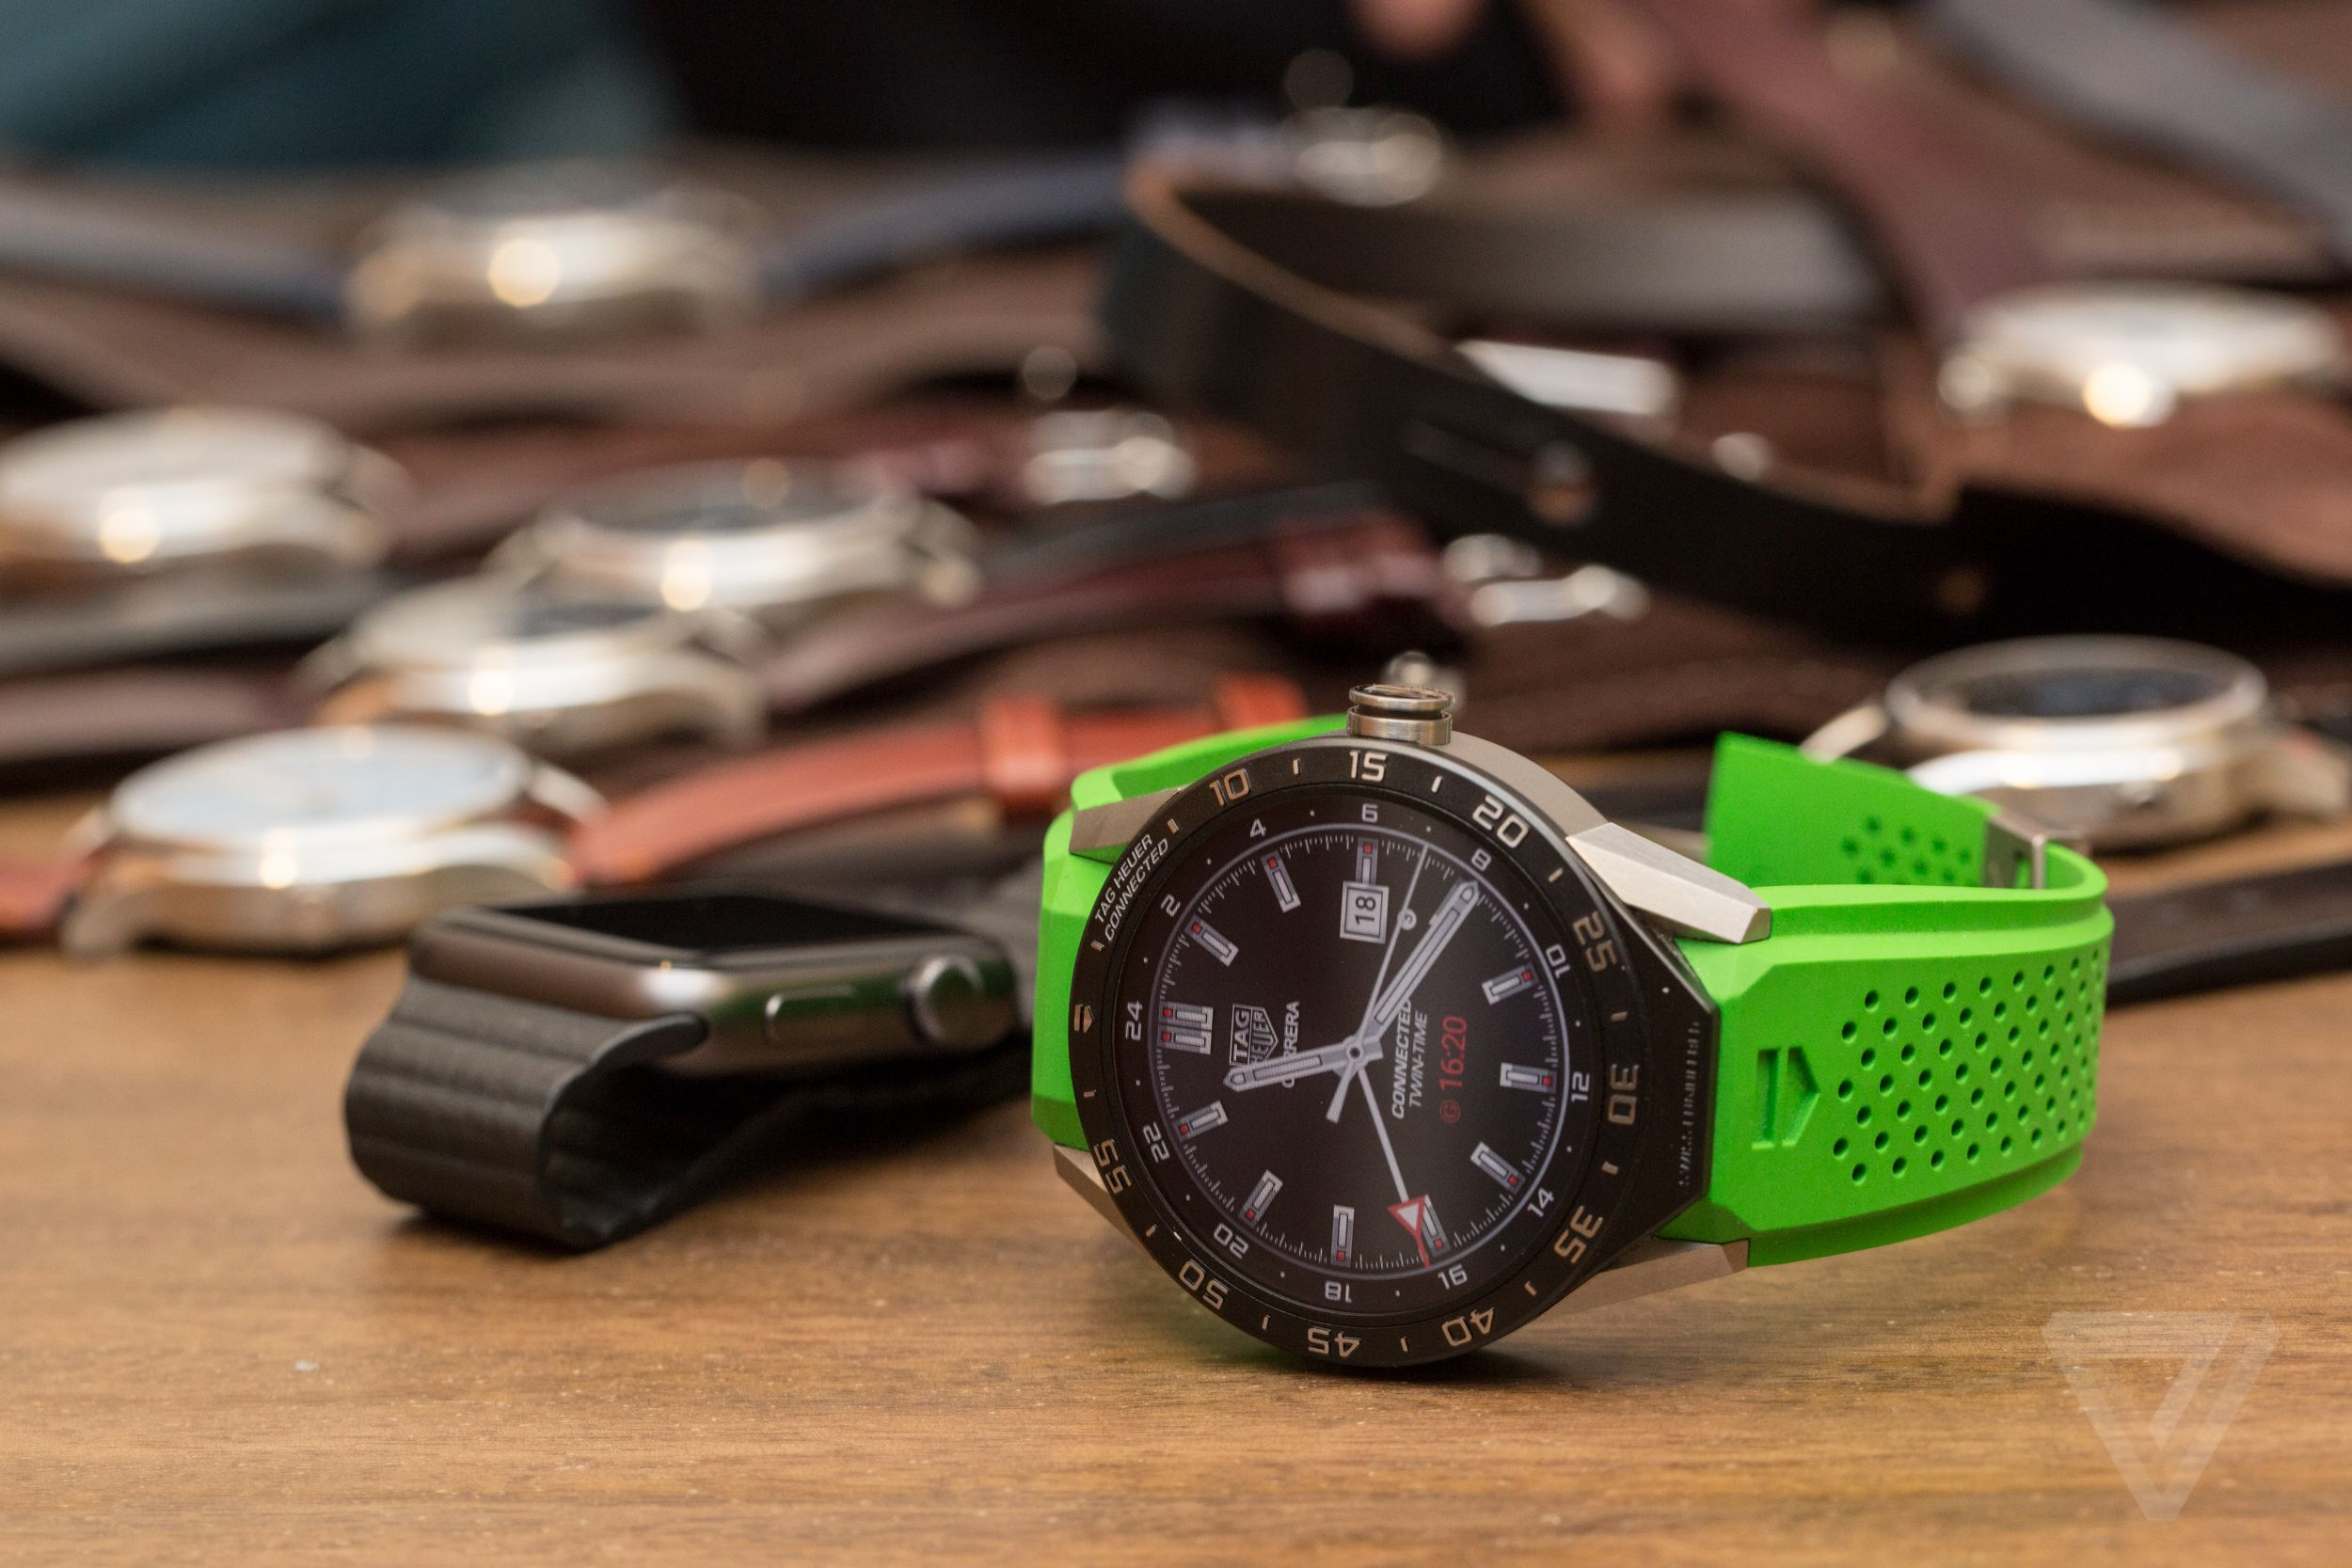 Tag Heuer's Carrera Connected is a damning critique of